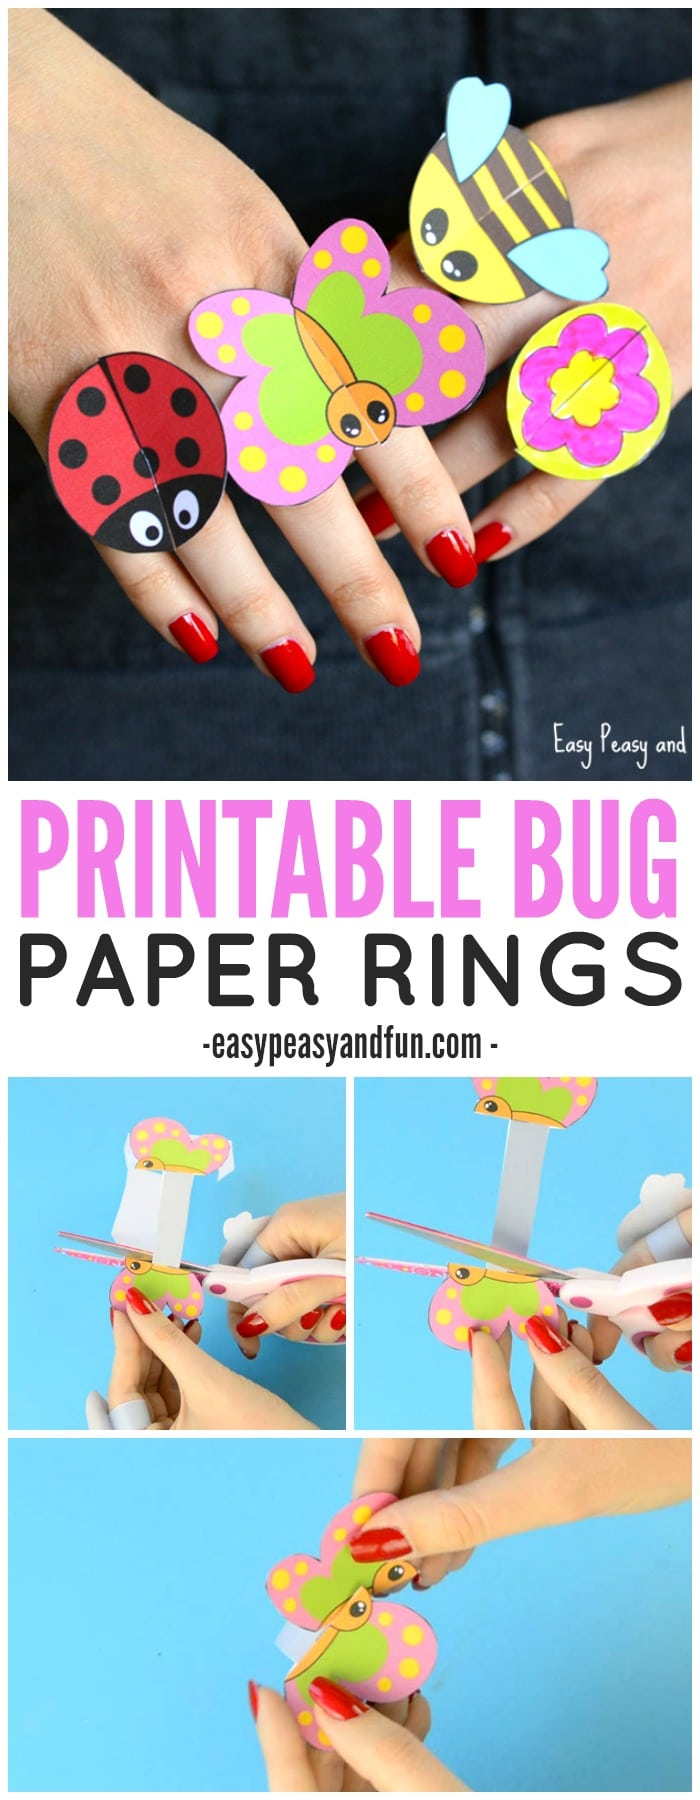 Printable Bug Paper Rings for Kids to Make